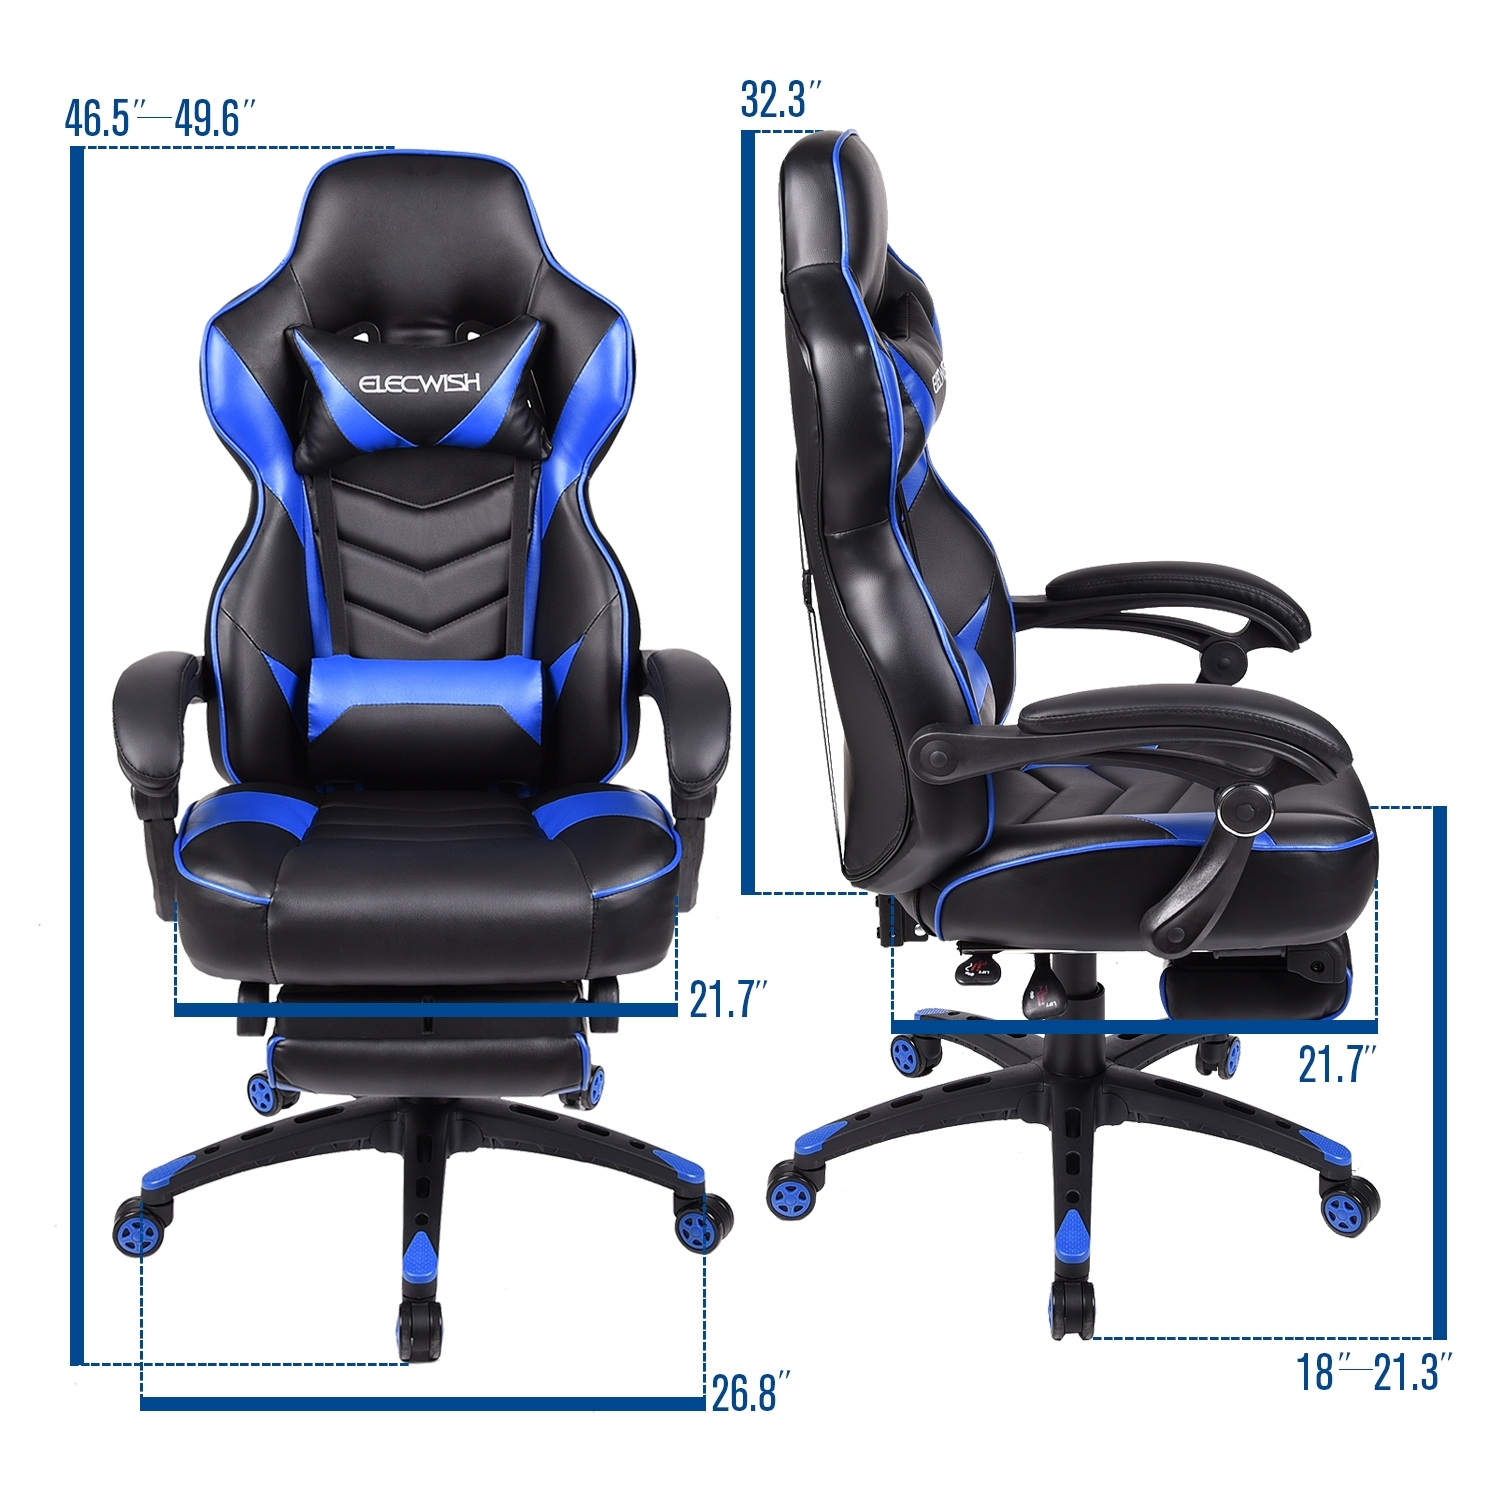 soltekonline elecwish office gaming chair racing recliner bucket seat computer desk footrest. Black Bedroom Furniture Sets. Home Design Ideas